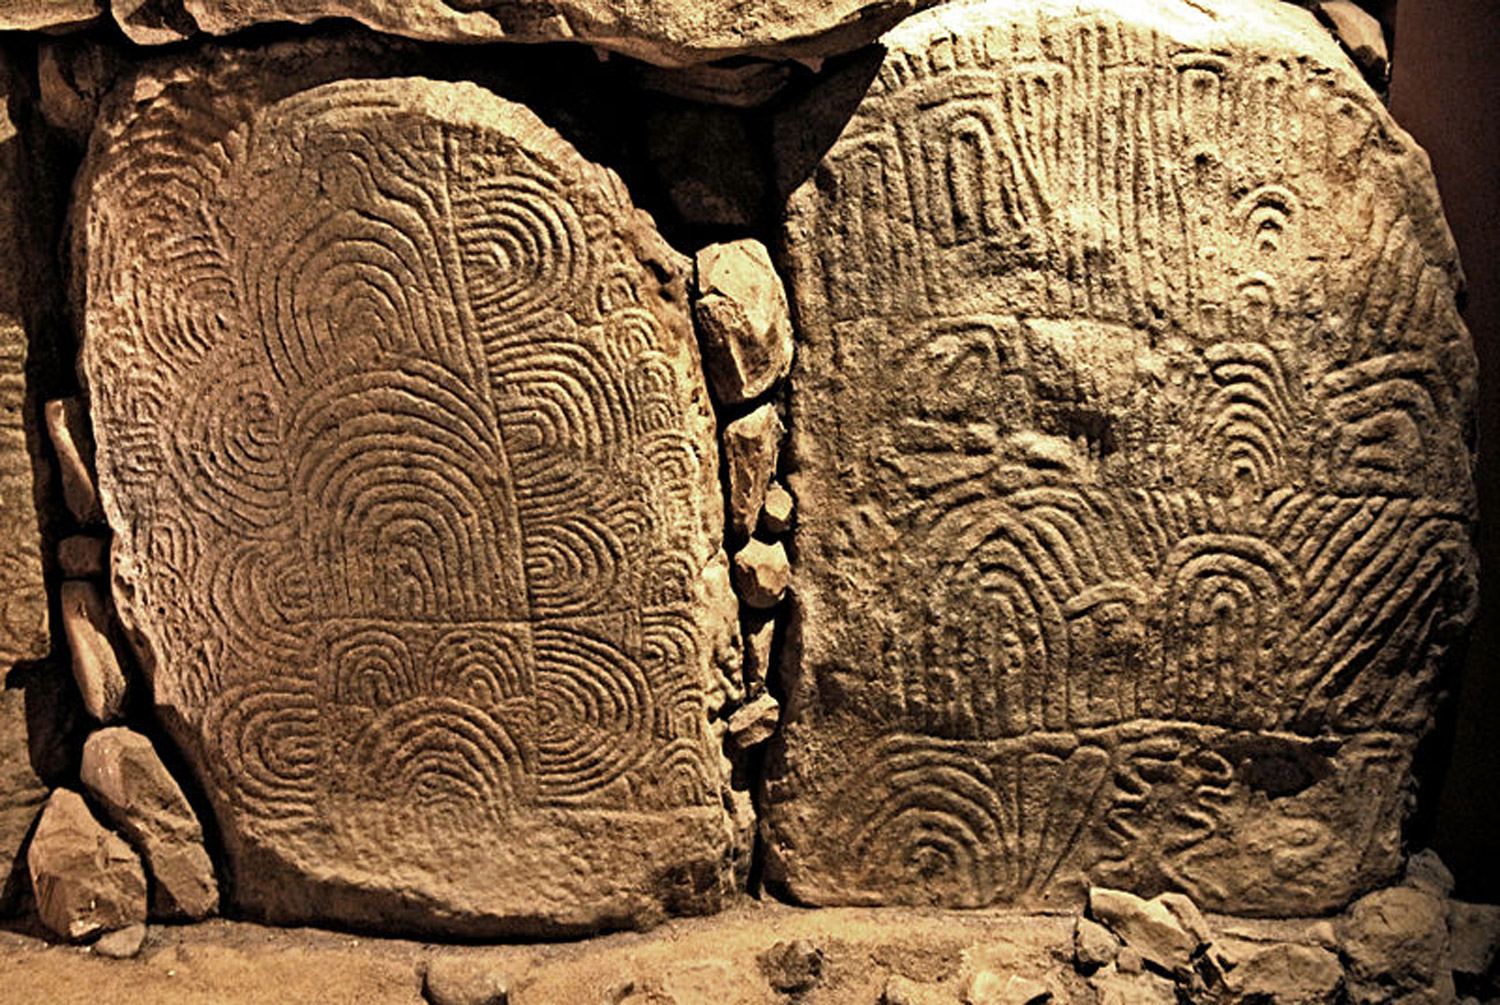 Image: Megalithic art featuring curved demarcations courtesy of Wikimedia Commons